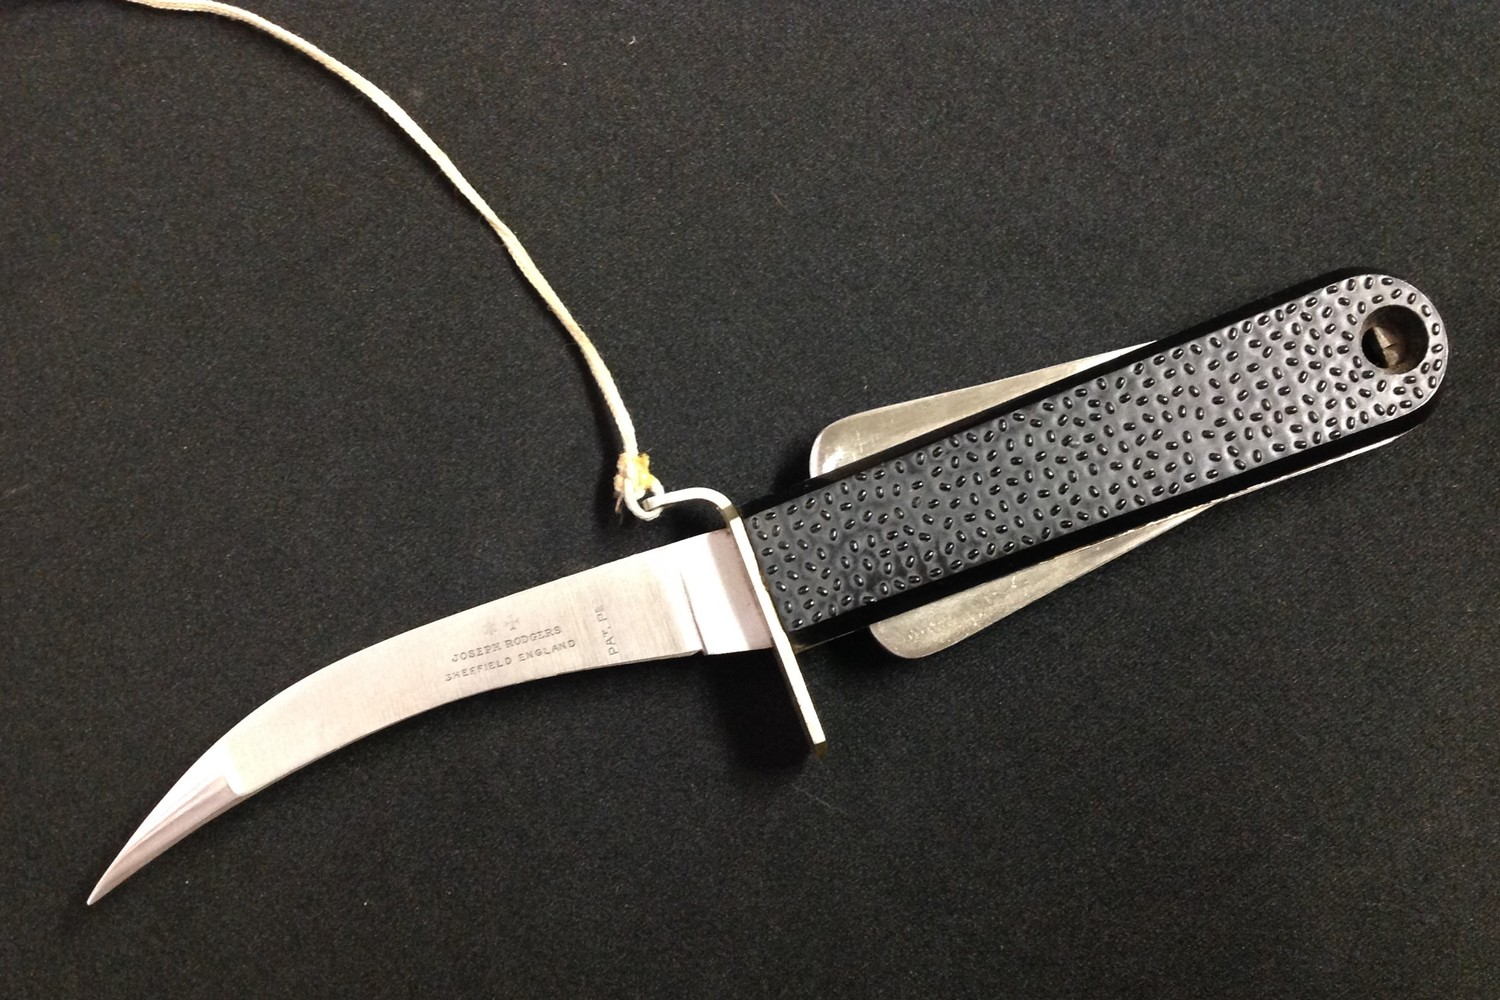 Post War British Joseph Rodgers Aircrew Emergency Knife with curved 100mm long single edged blade - Image 4 of 6